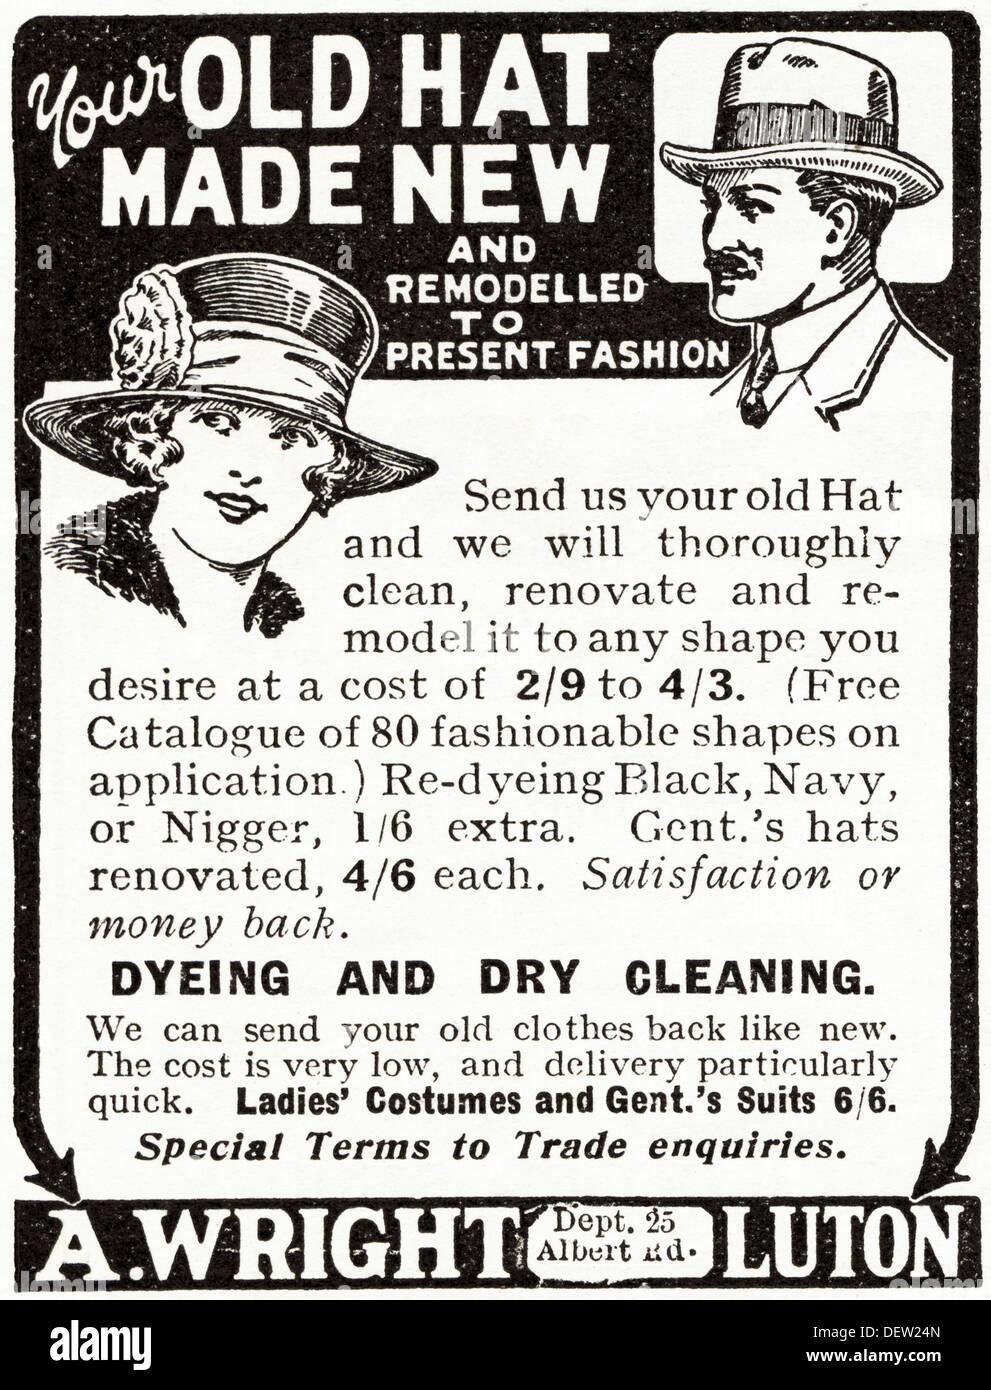 Original 1920s advertisement advertising remodeling of old hats for present fashion, consumer magazine advert circa Stock Photo